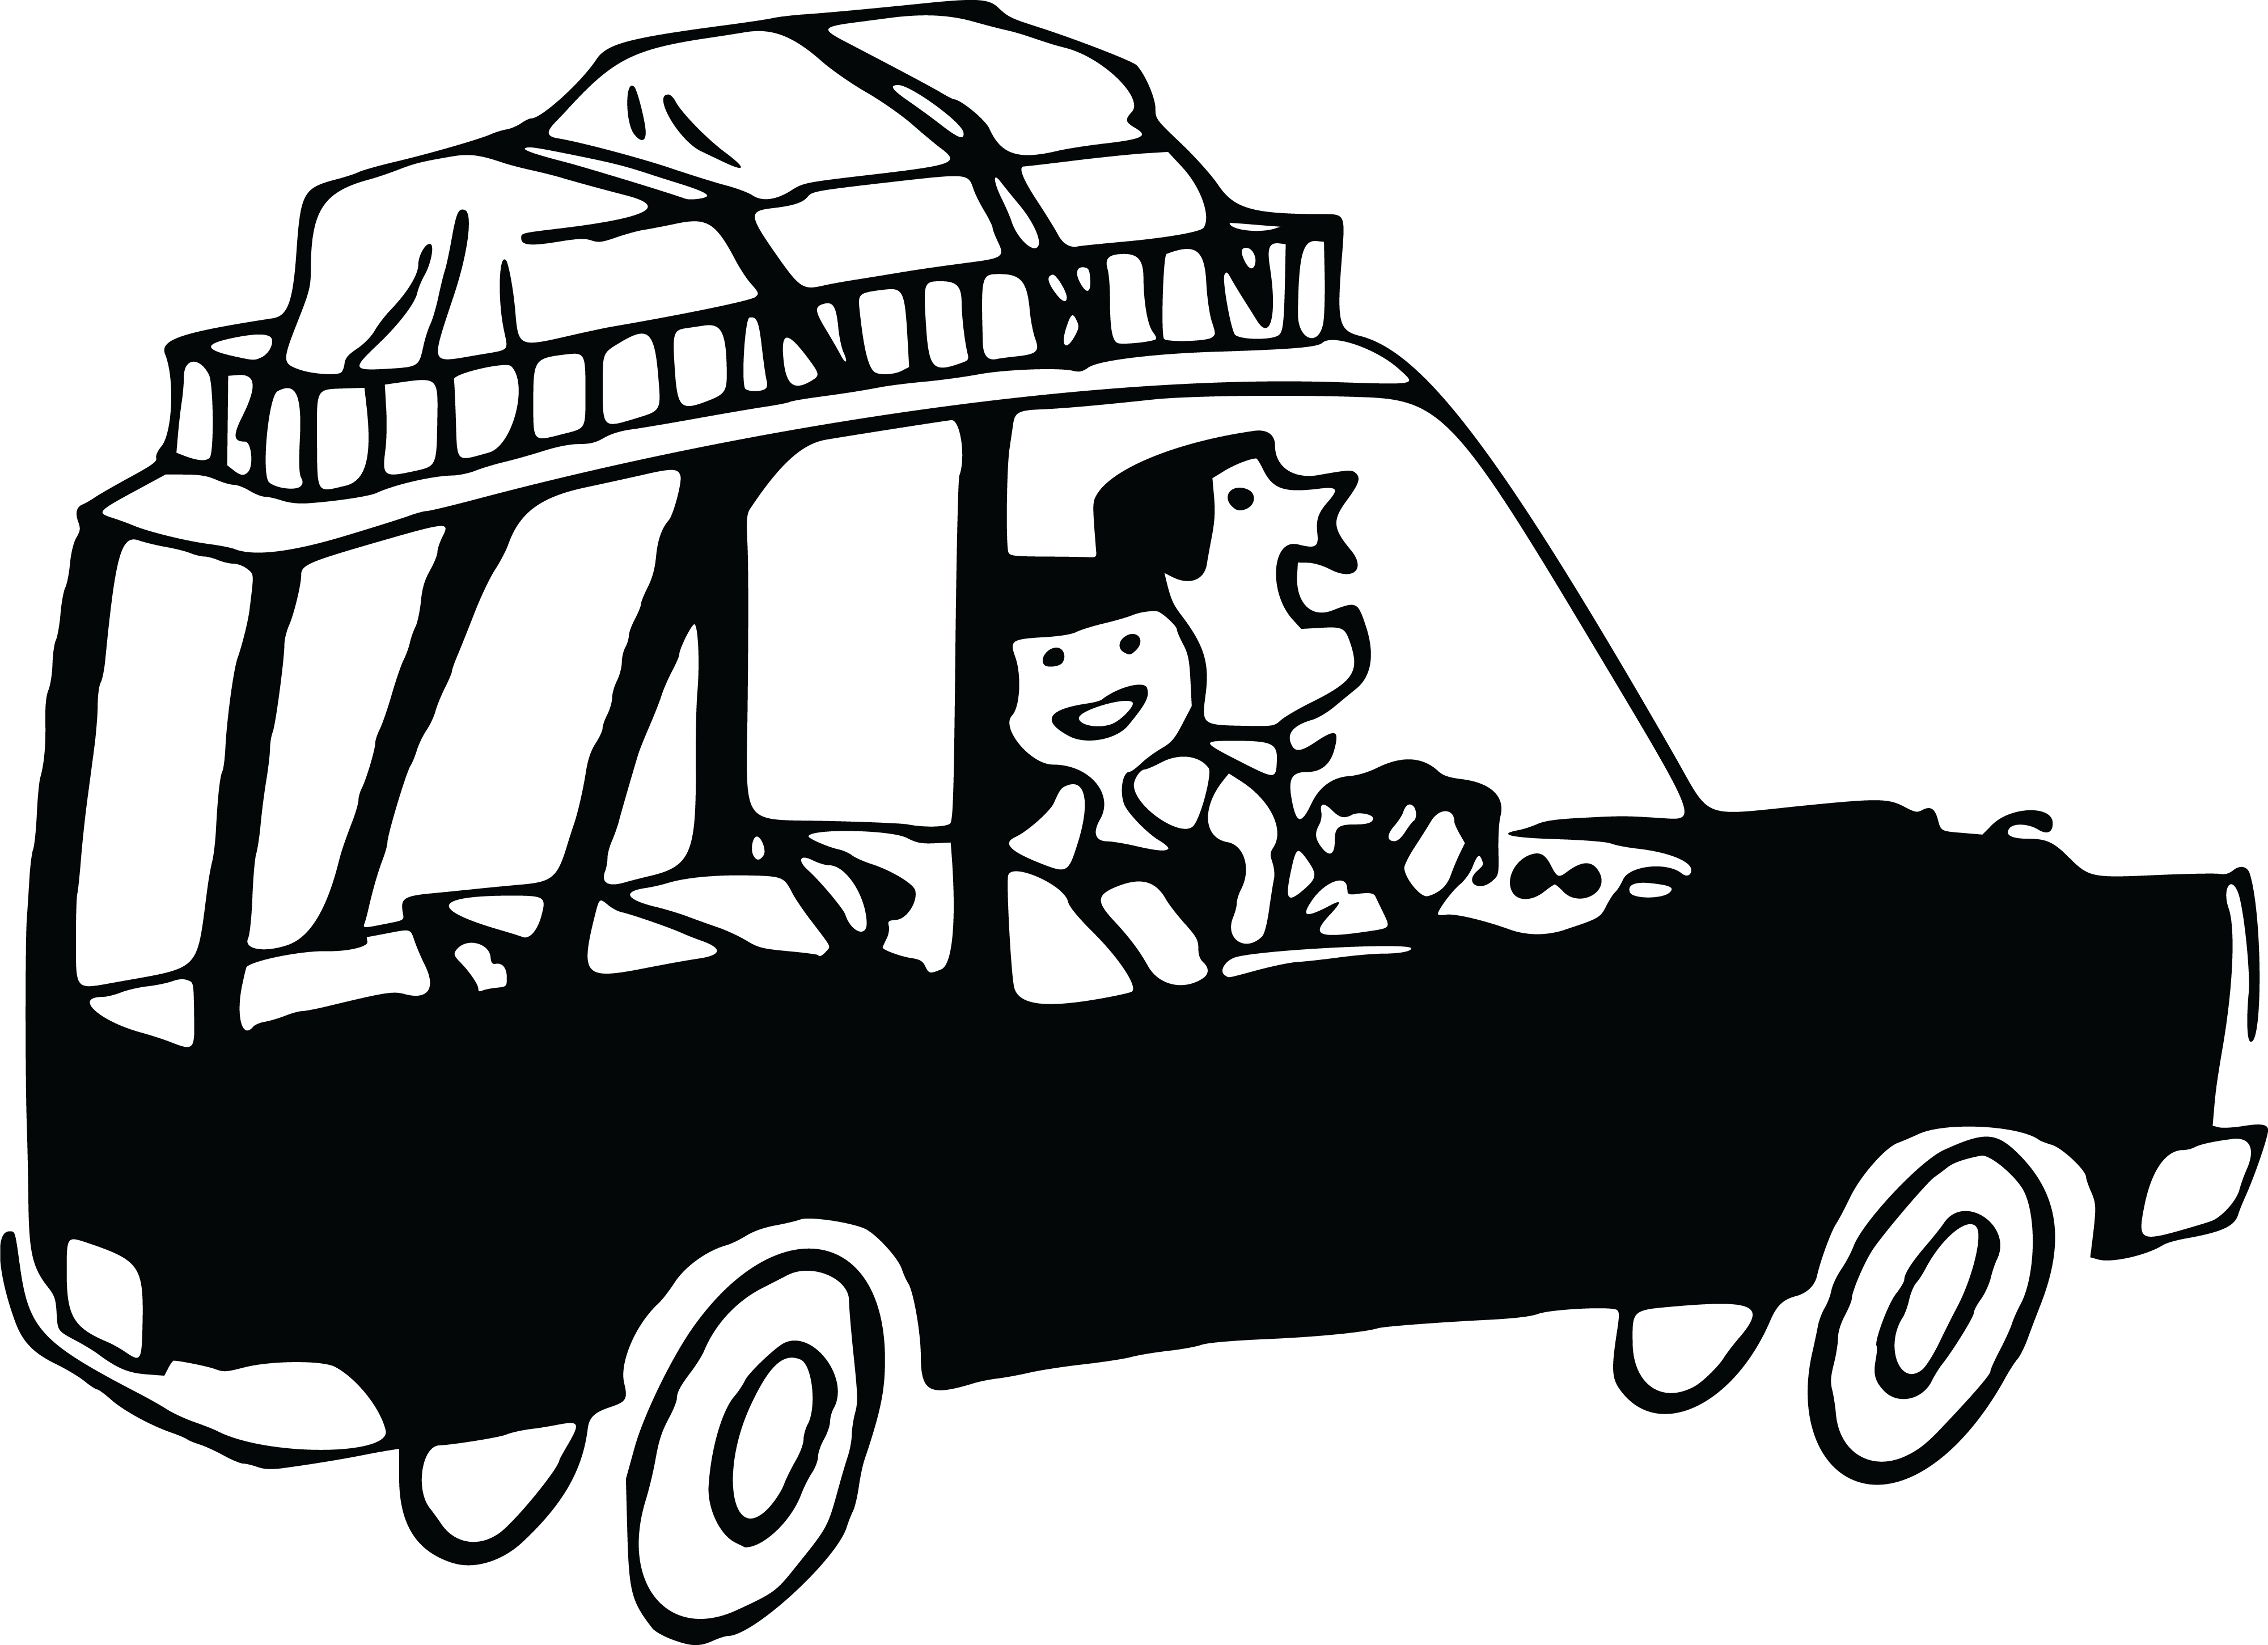 Clipart road black and white. Trip png transparent free